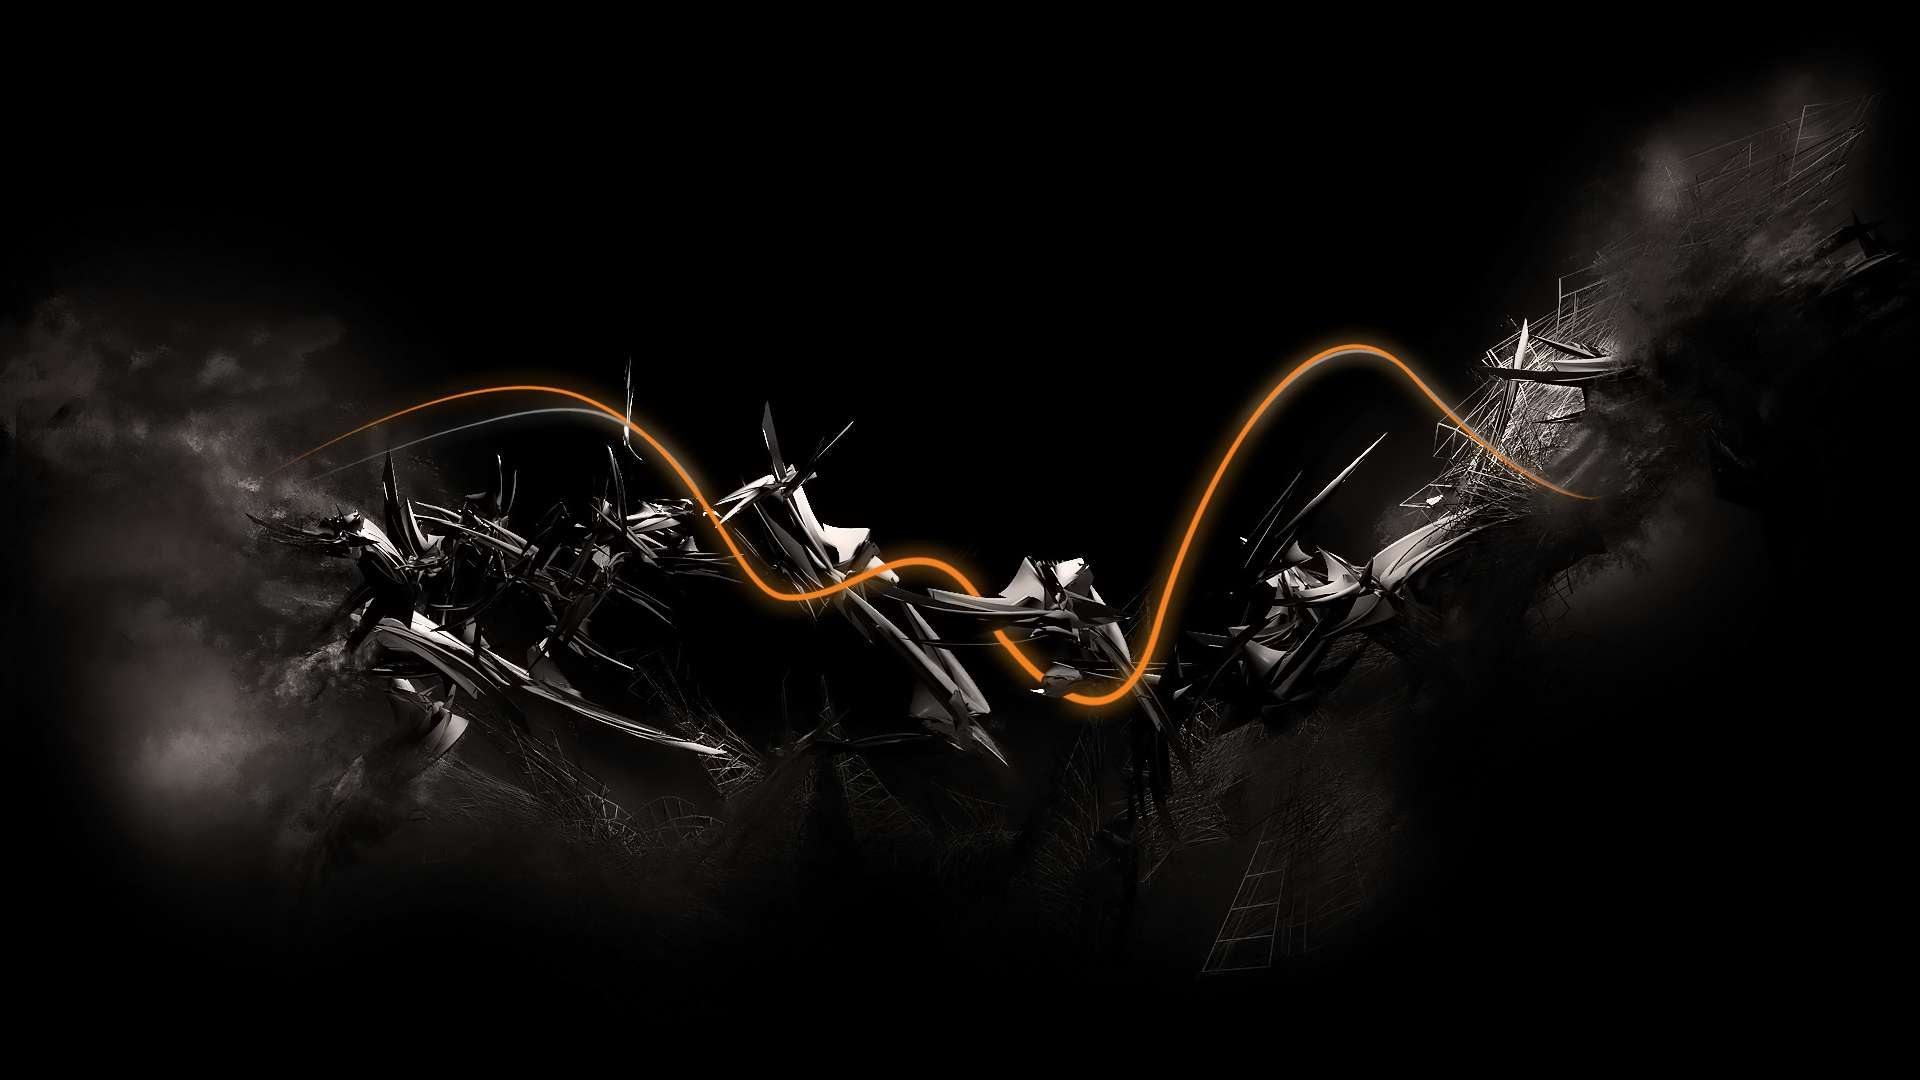 abstract wallpaper black wallpapers 1920x1080 1920x1080